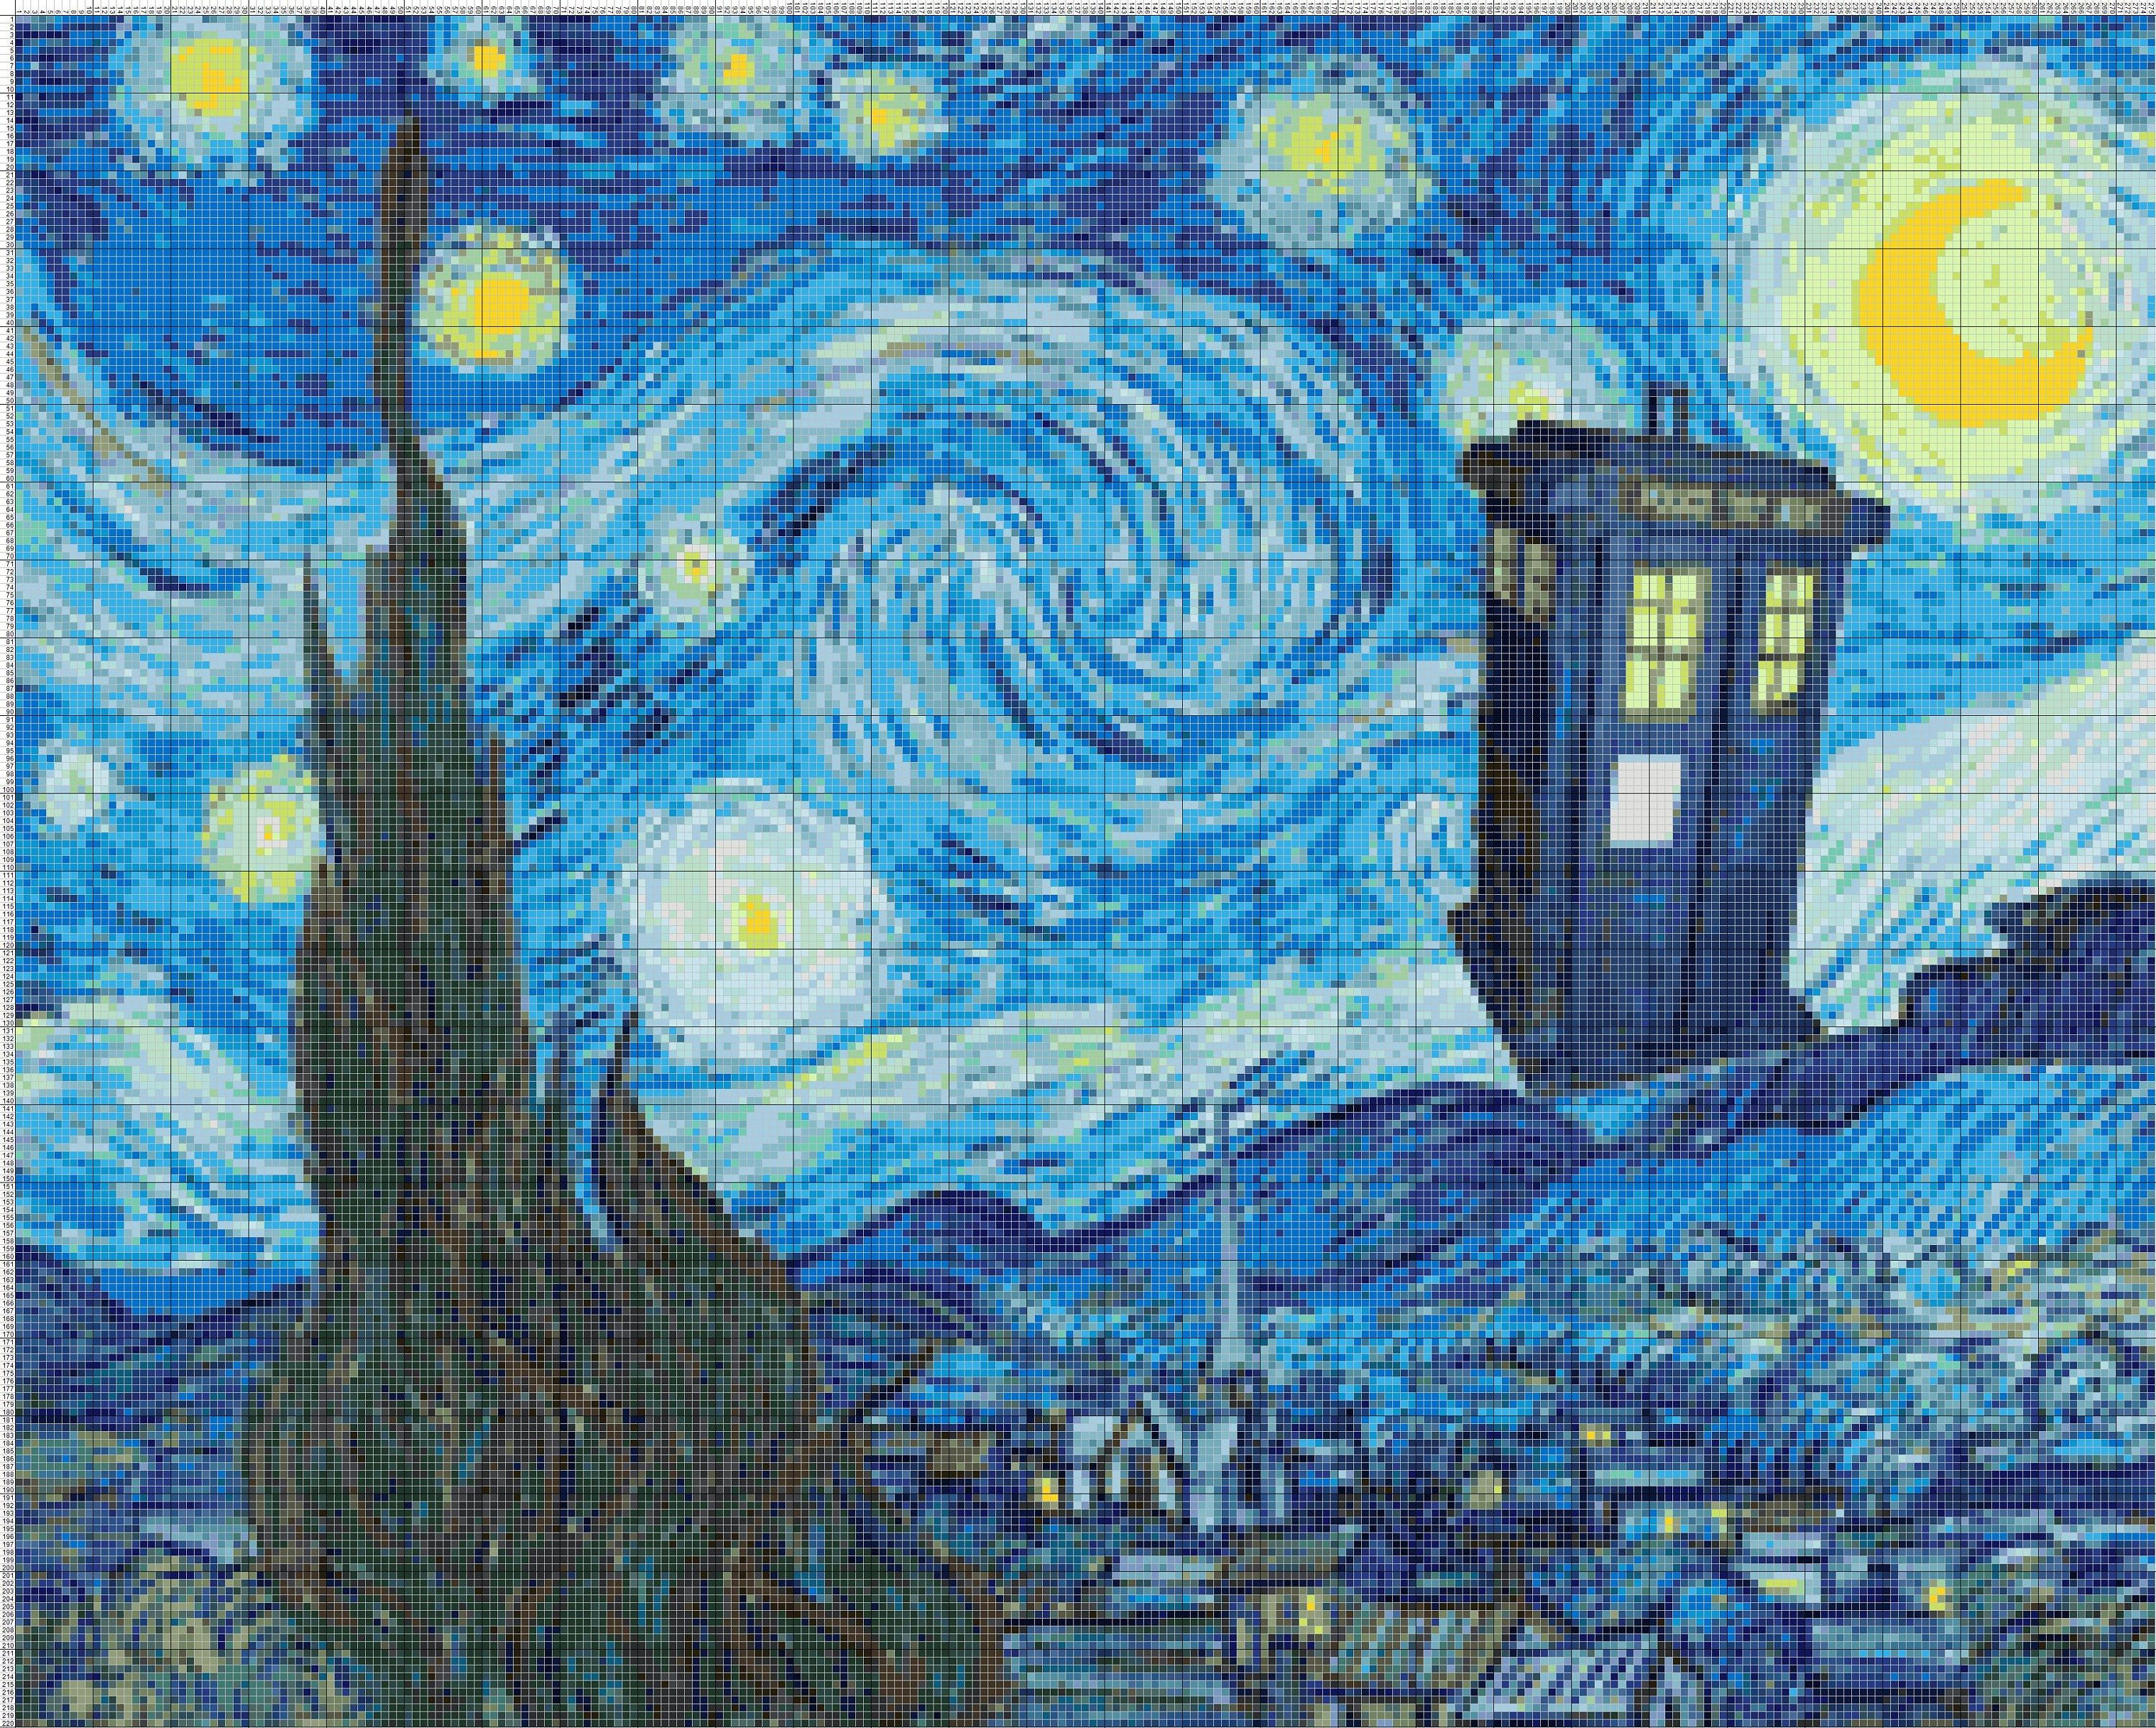 Buy 2 Get 1 Free Van Gogh Starry Night Doctor Who Tardis 843 Cross Stitch Pattern Counted Cross Stitch Chart Pdf Format Instant Download With Images Starry Night Van Gogh Starry